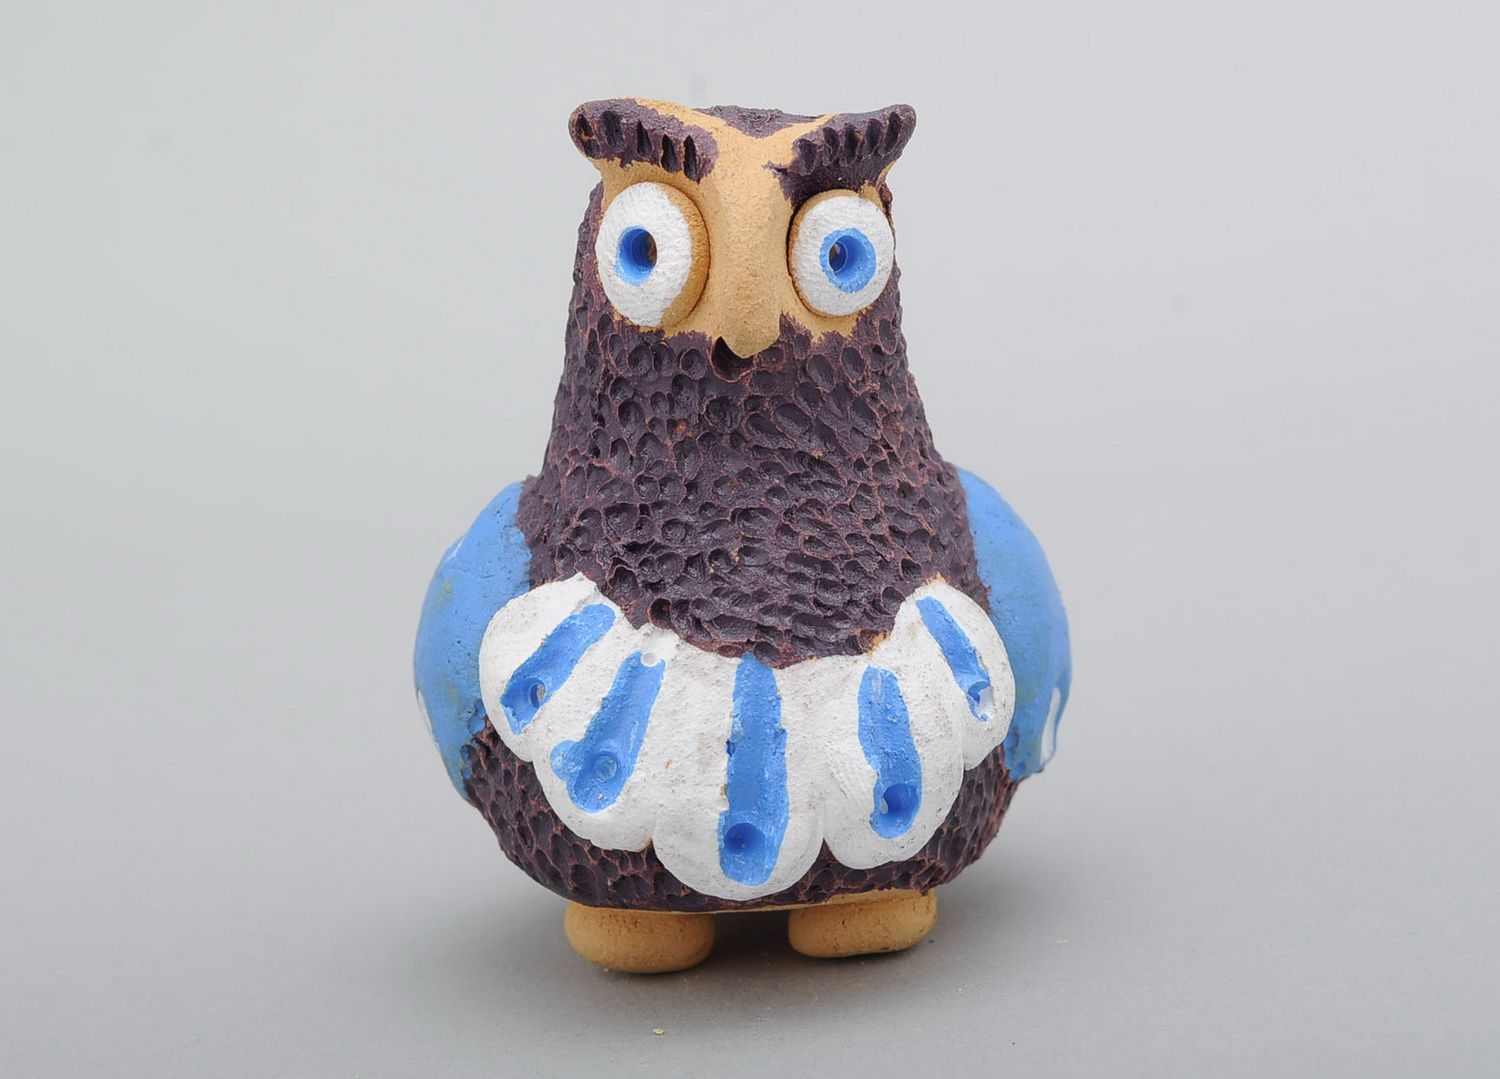 Penny whistle in the form of owl made of clay photo 3